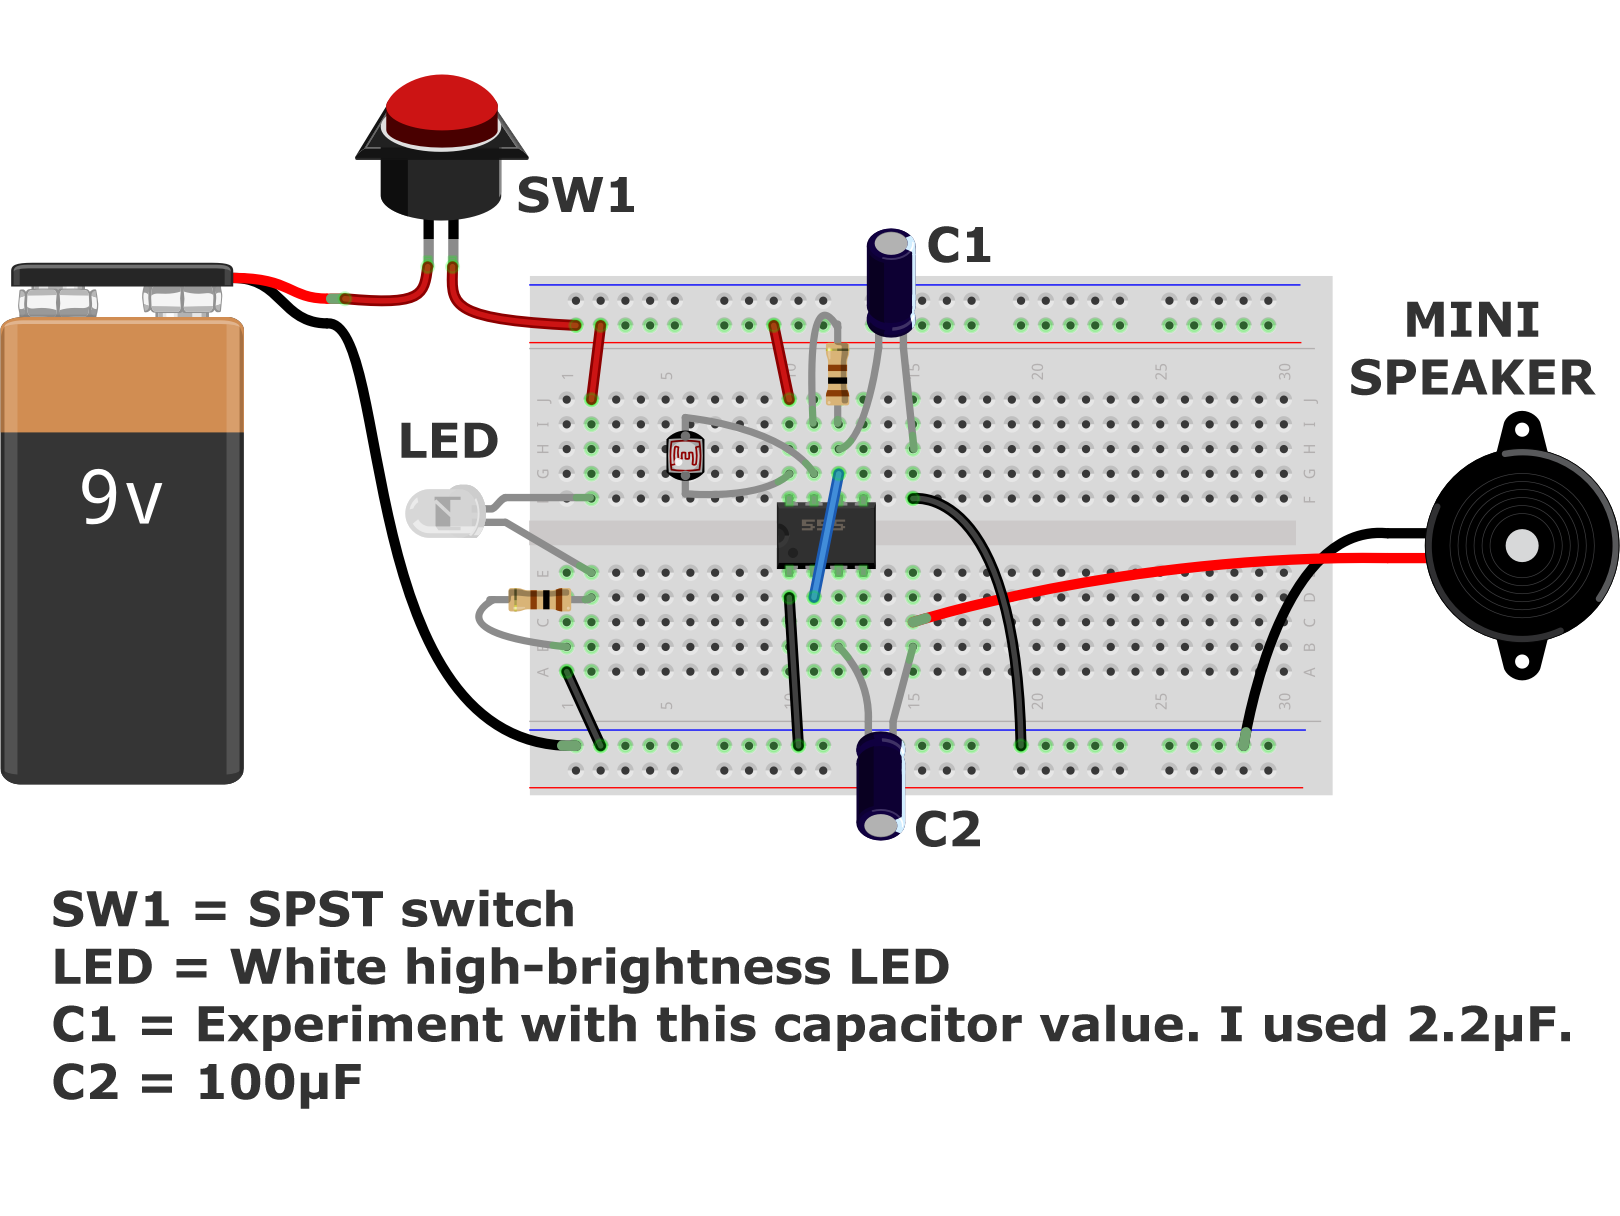 Light2sound Ldr Synth on breadboard circuits